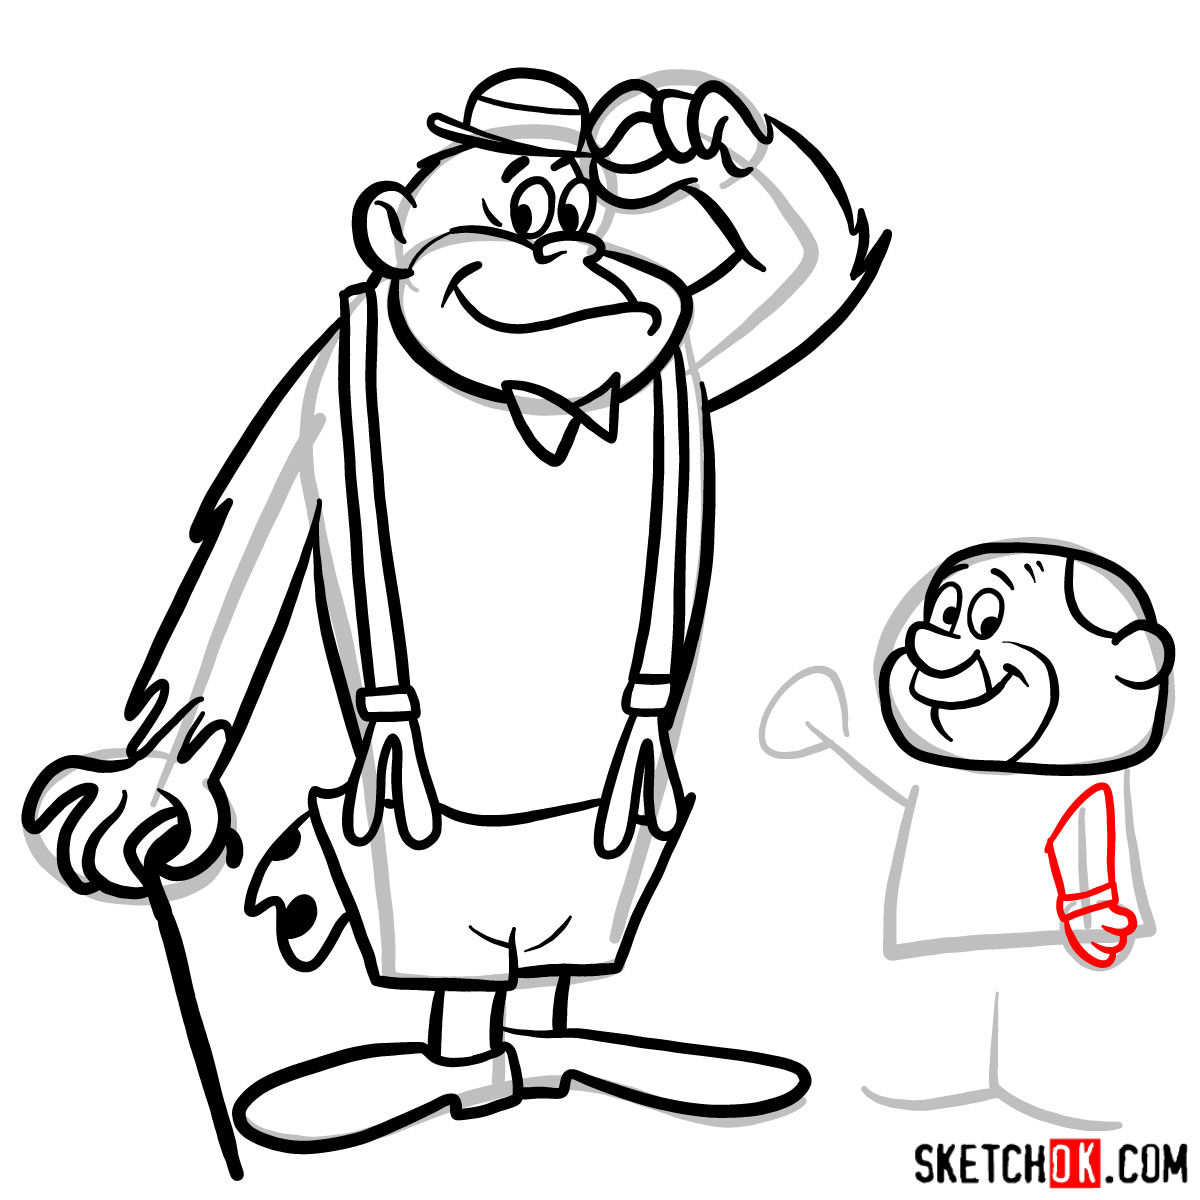 How to draw Magilla Gorilla and Mr. Peebles - step 13